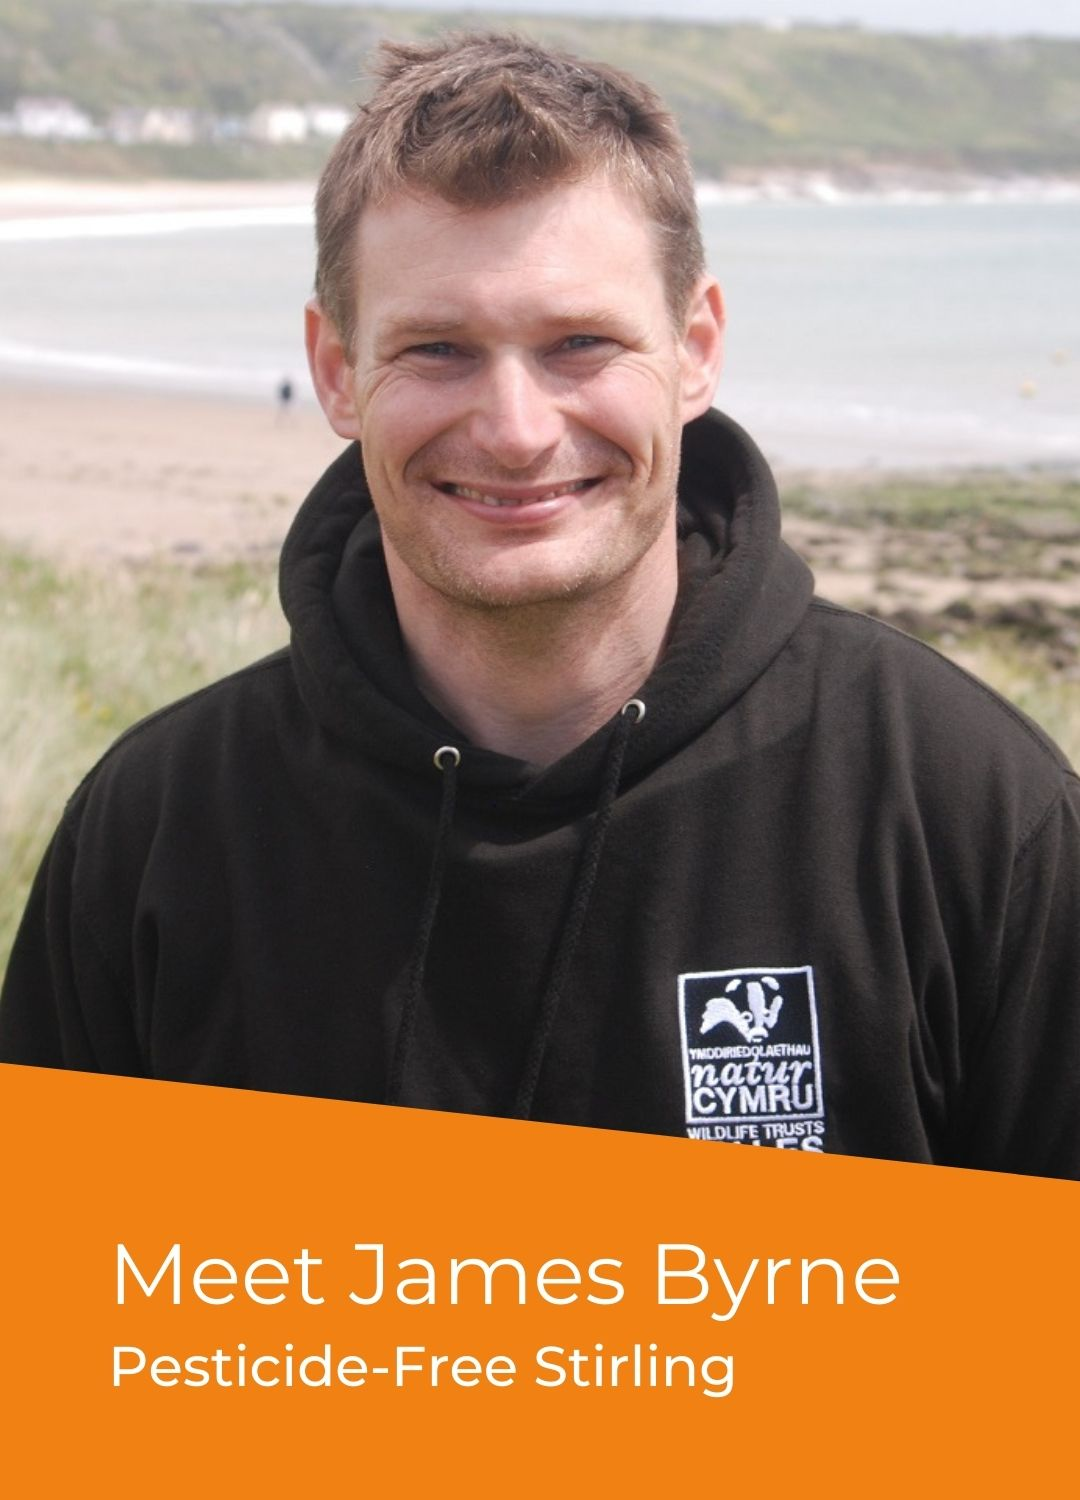 James Byrne - Campaigner Voices - Pesticide-Free Stirling